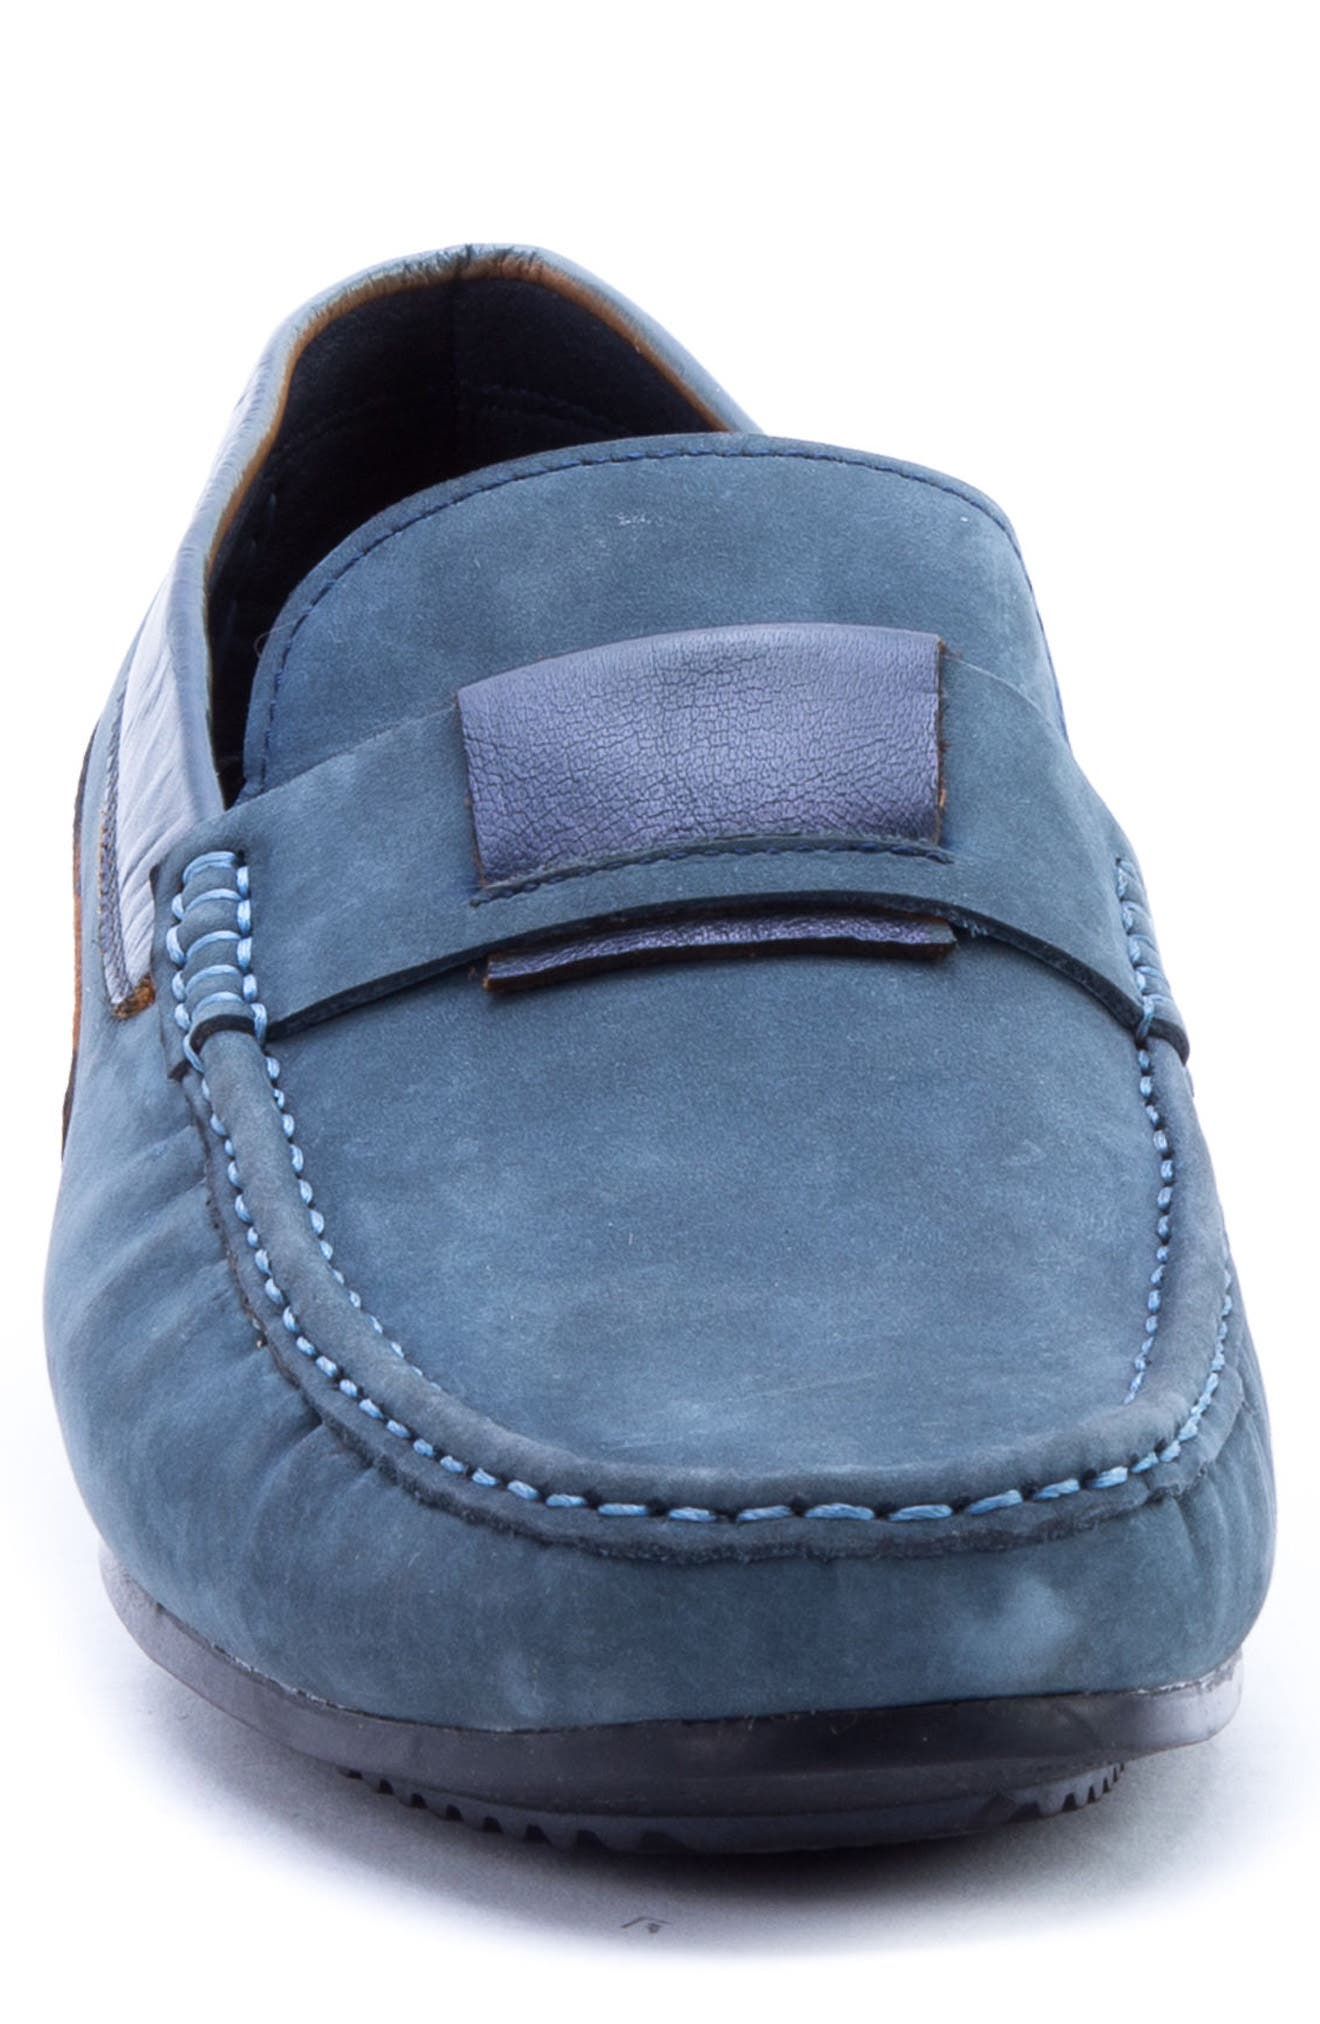 Seurat Driving Loafer,                             Alternate thumbnail 4, color,                             Blue Suede/ Leather